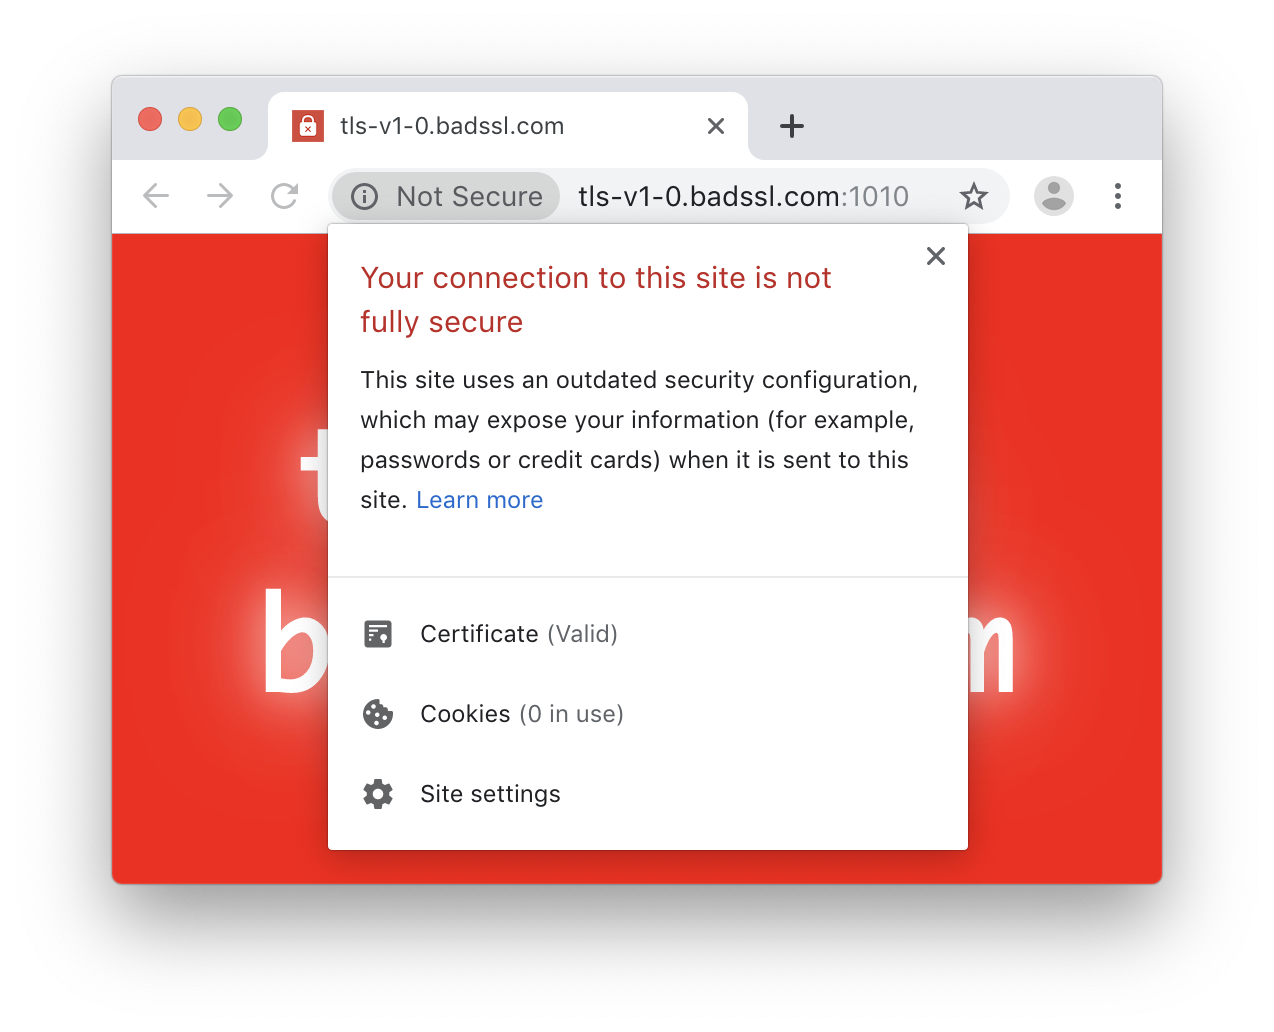 Chrome UI for Deprecating Legacy TLS Versions